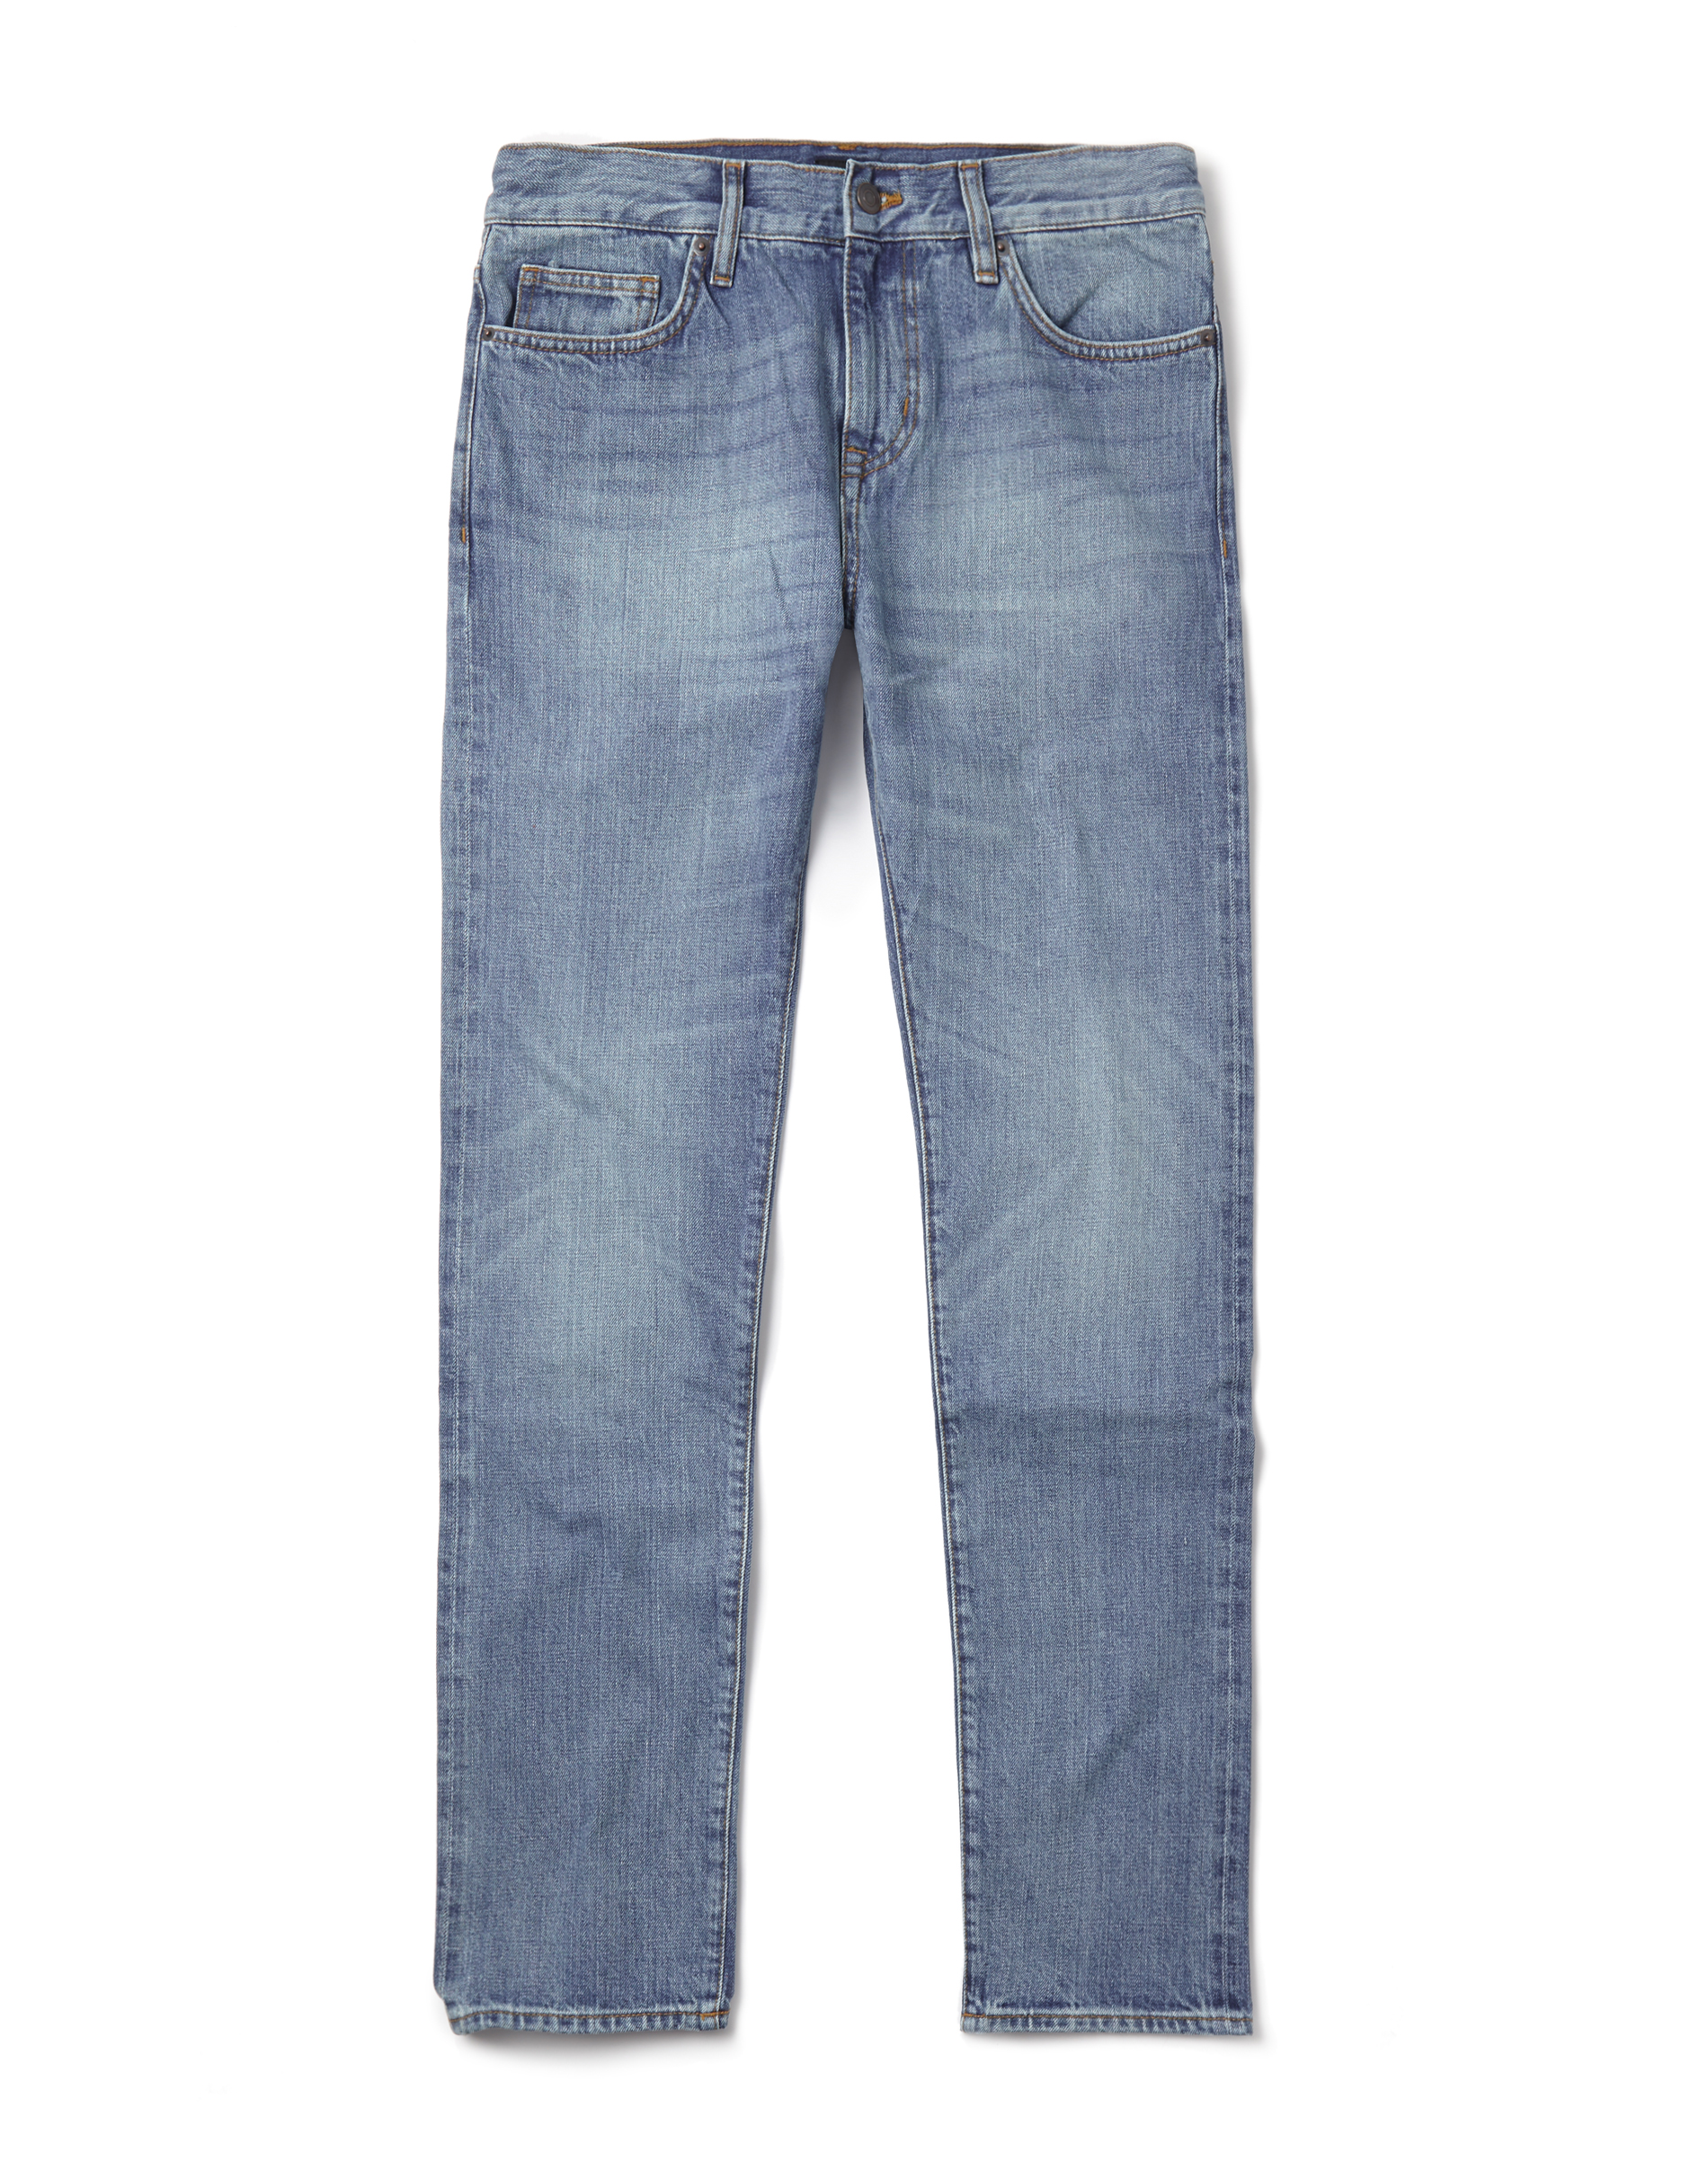 MVP BLEACHED WASH Cavell 5-Pocket Slim Fit Jeans